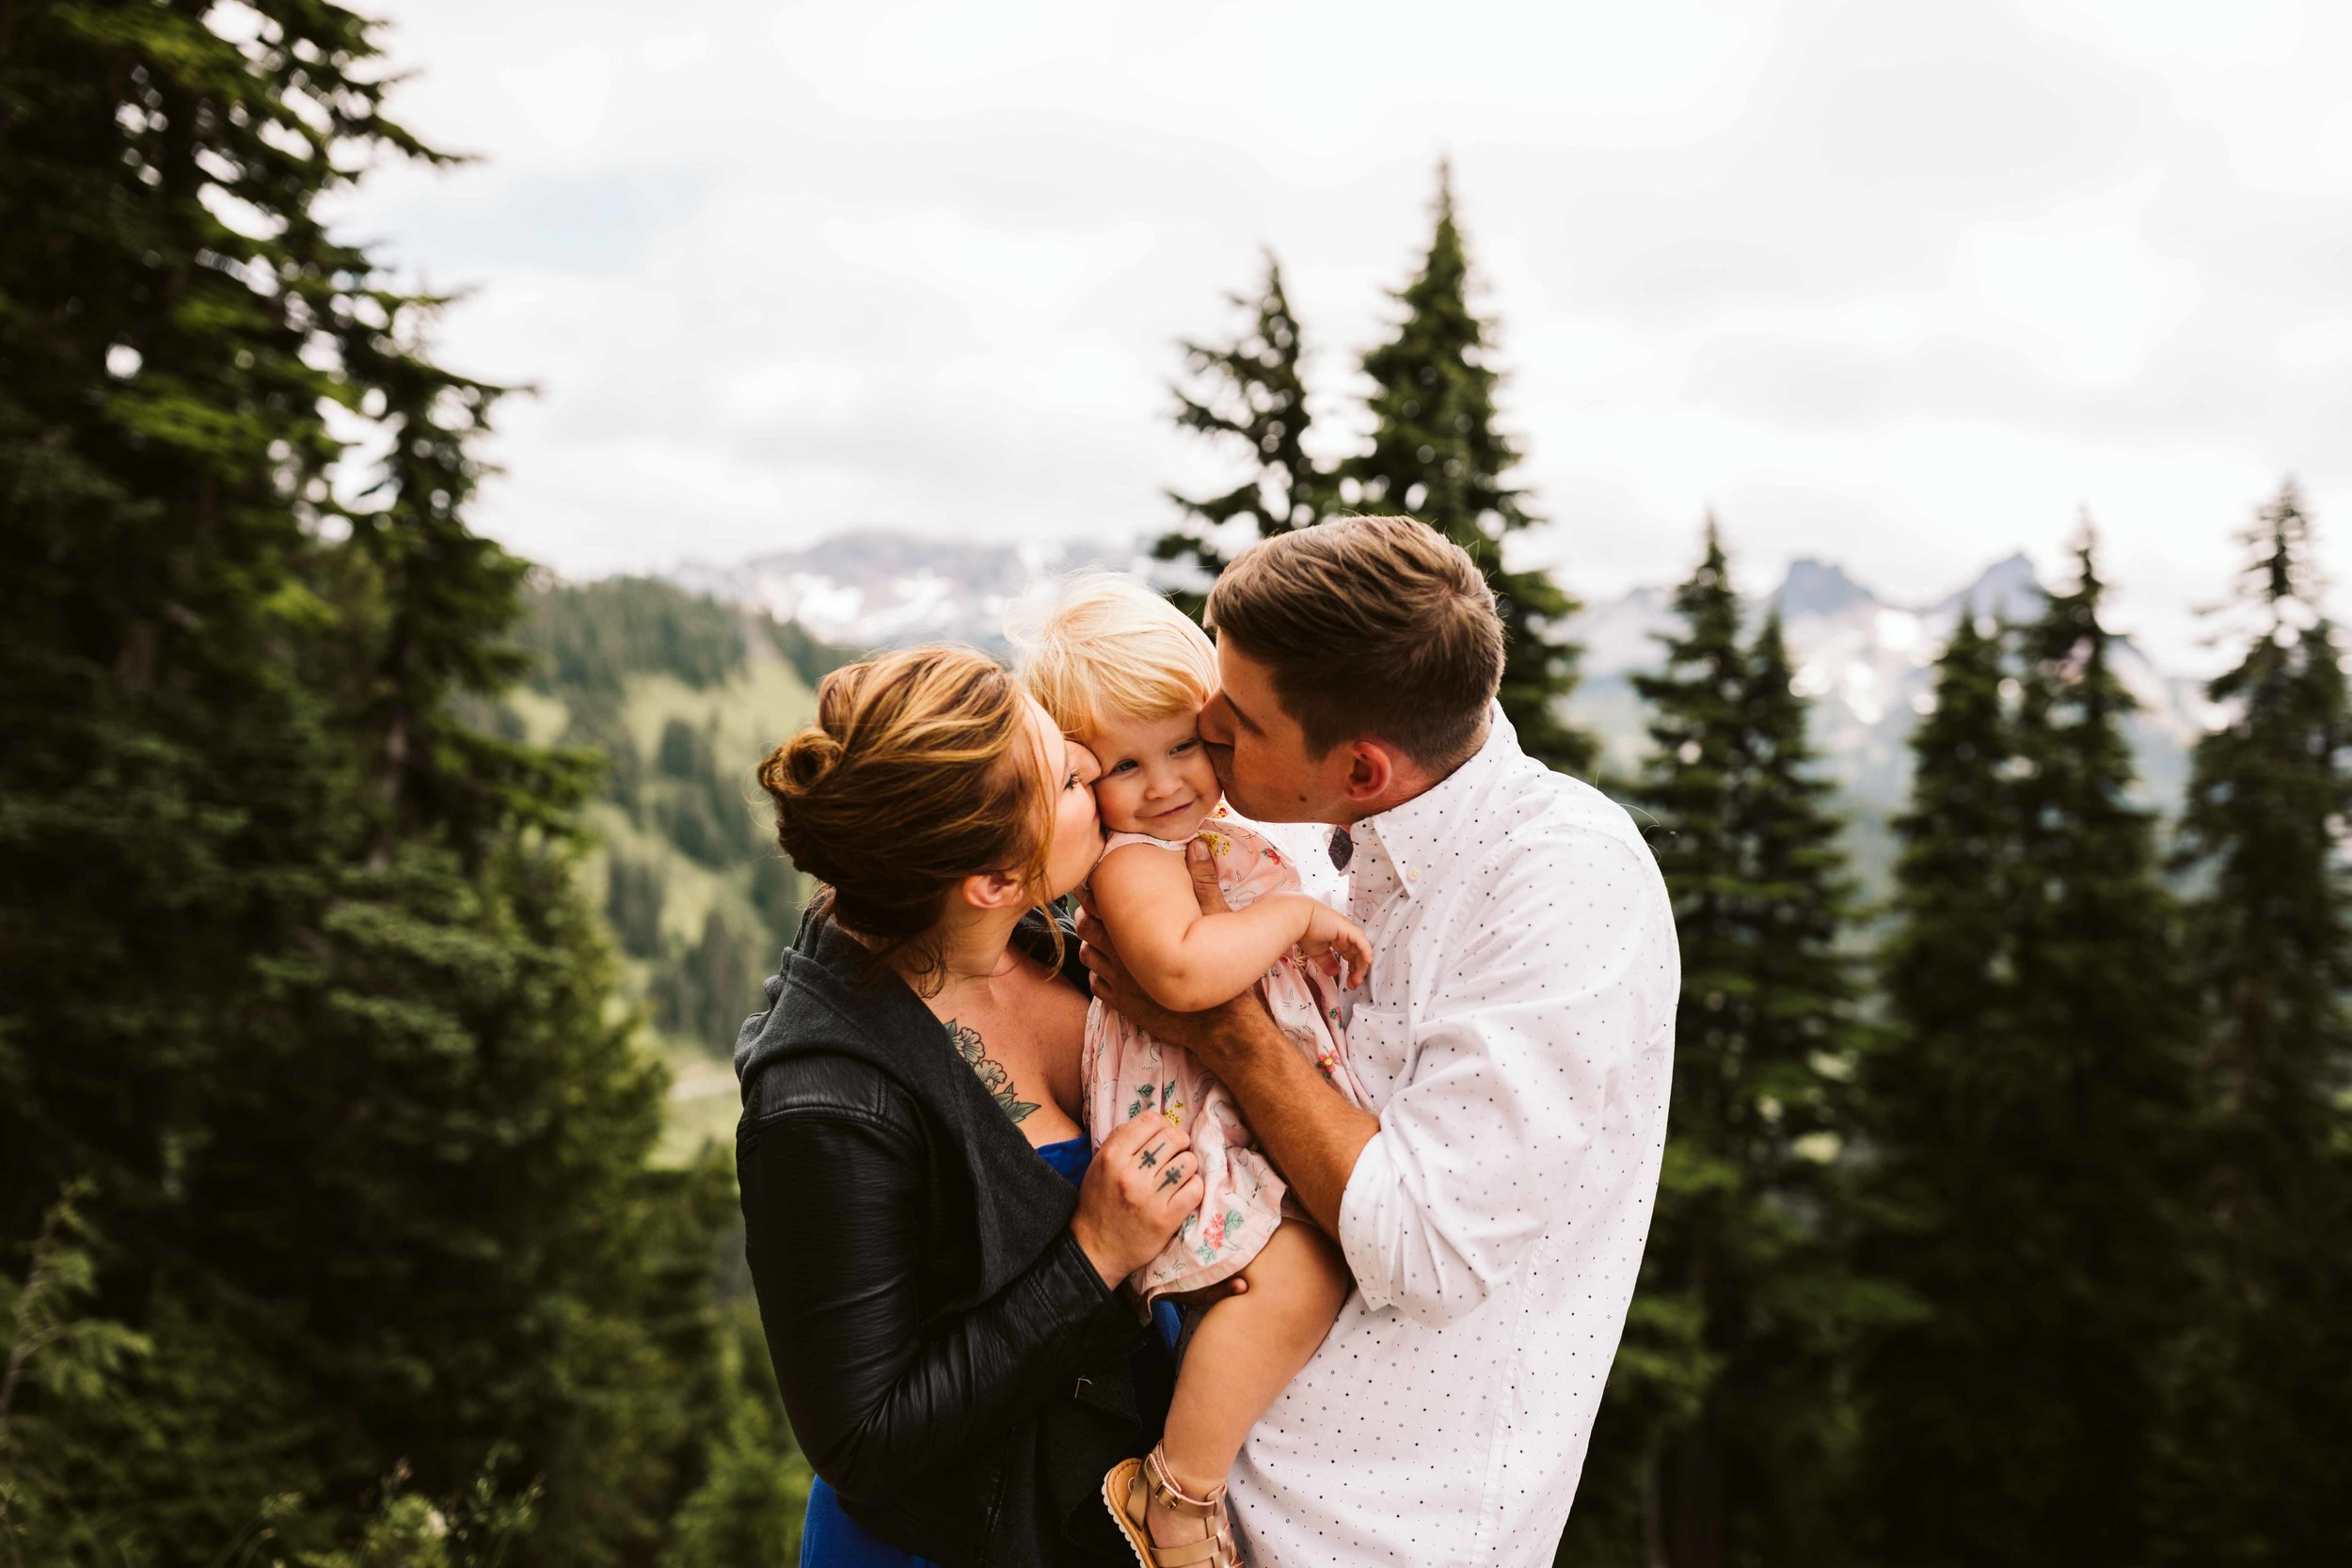 mt-rainier-engagement-6.jpg